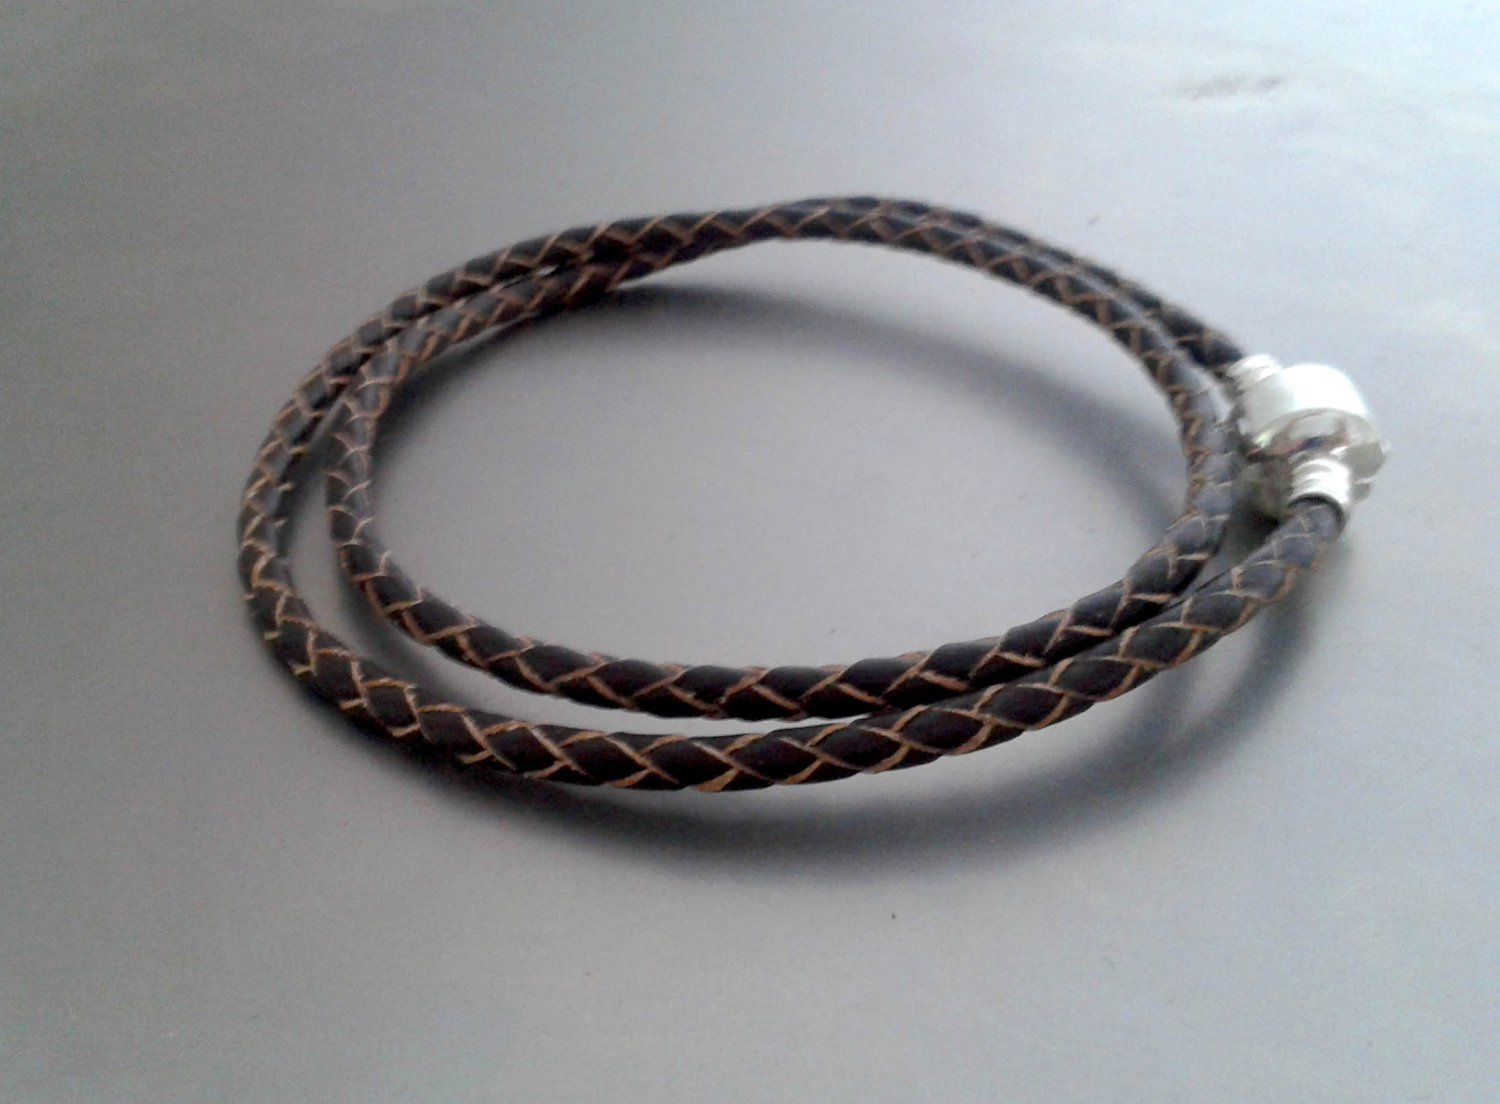 Braided Leather Bracelet With Snap Charm Closure